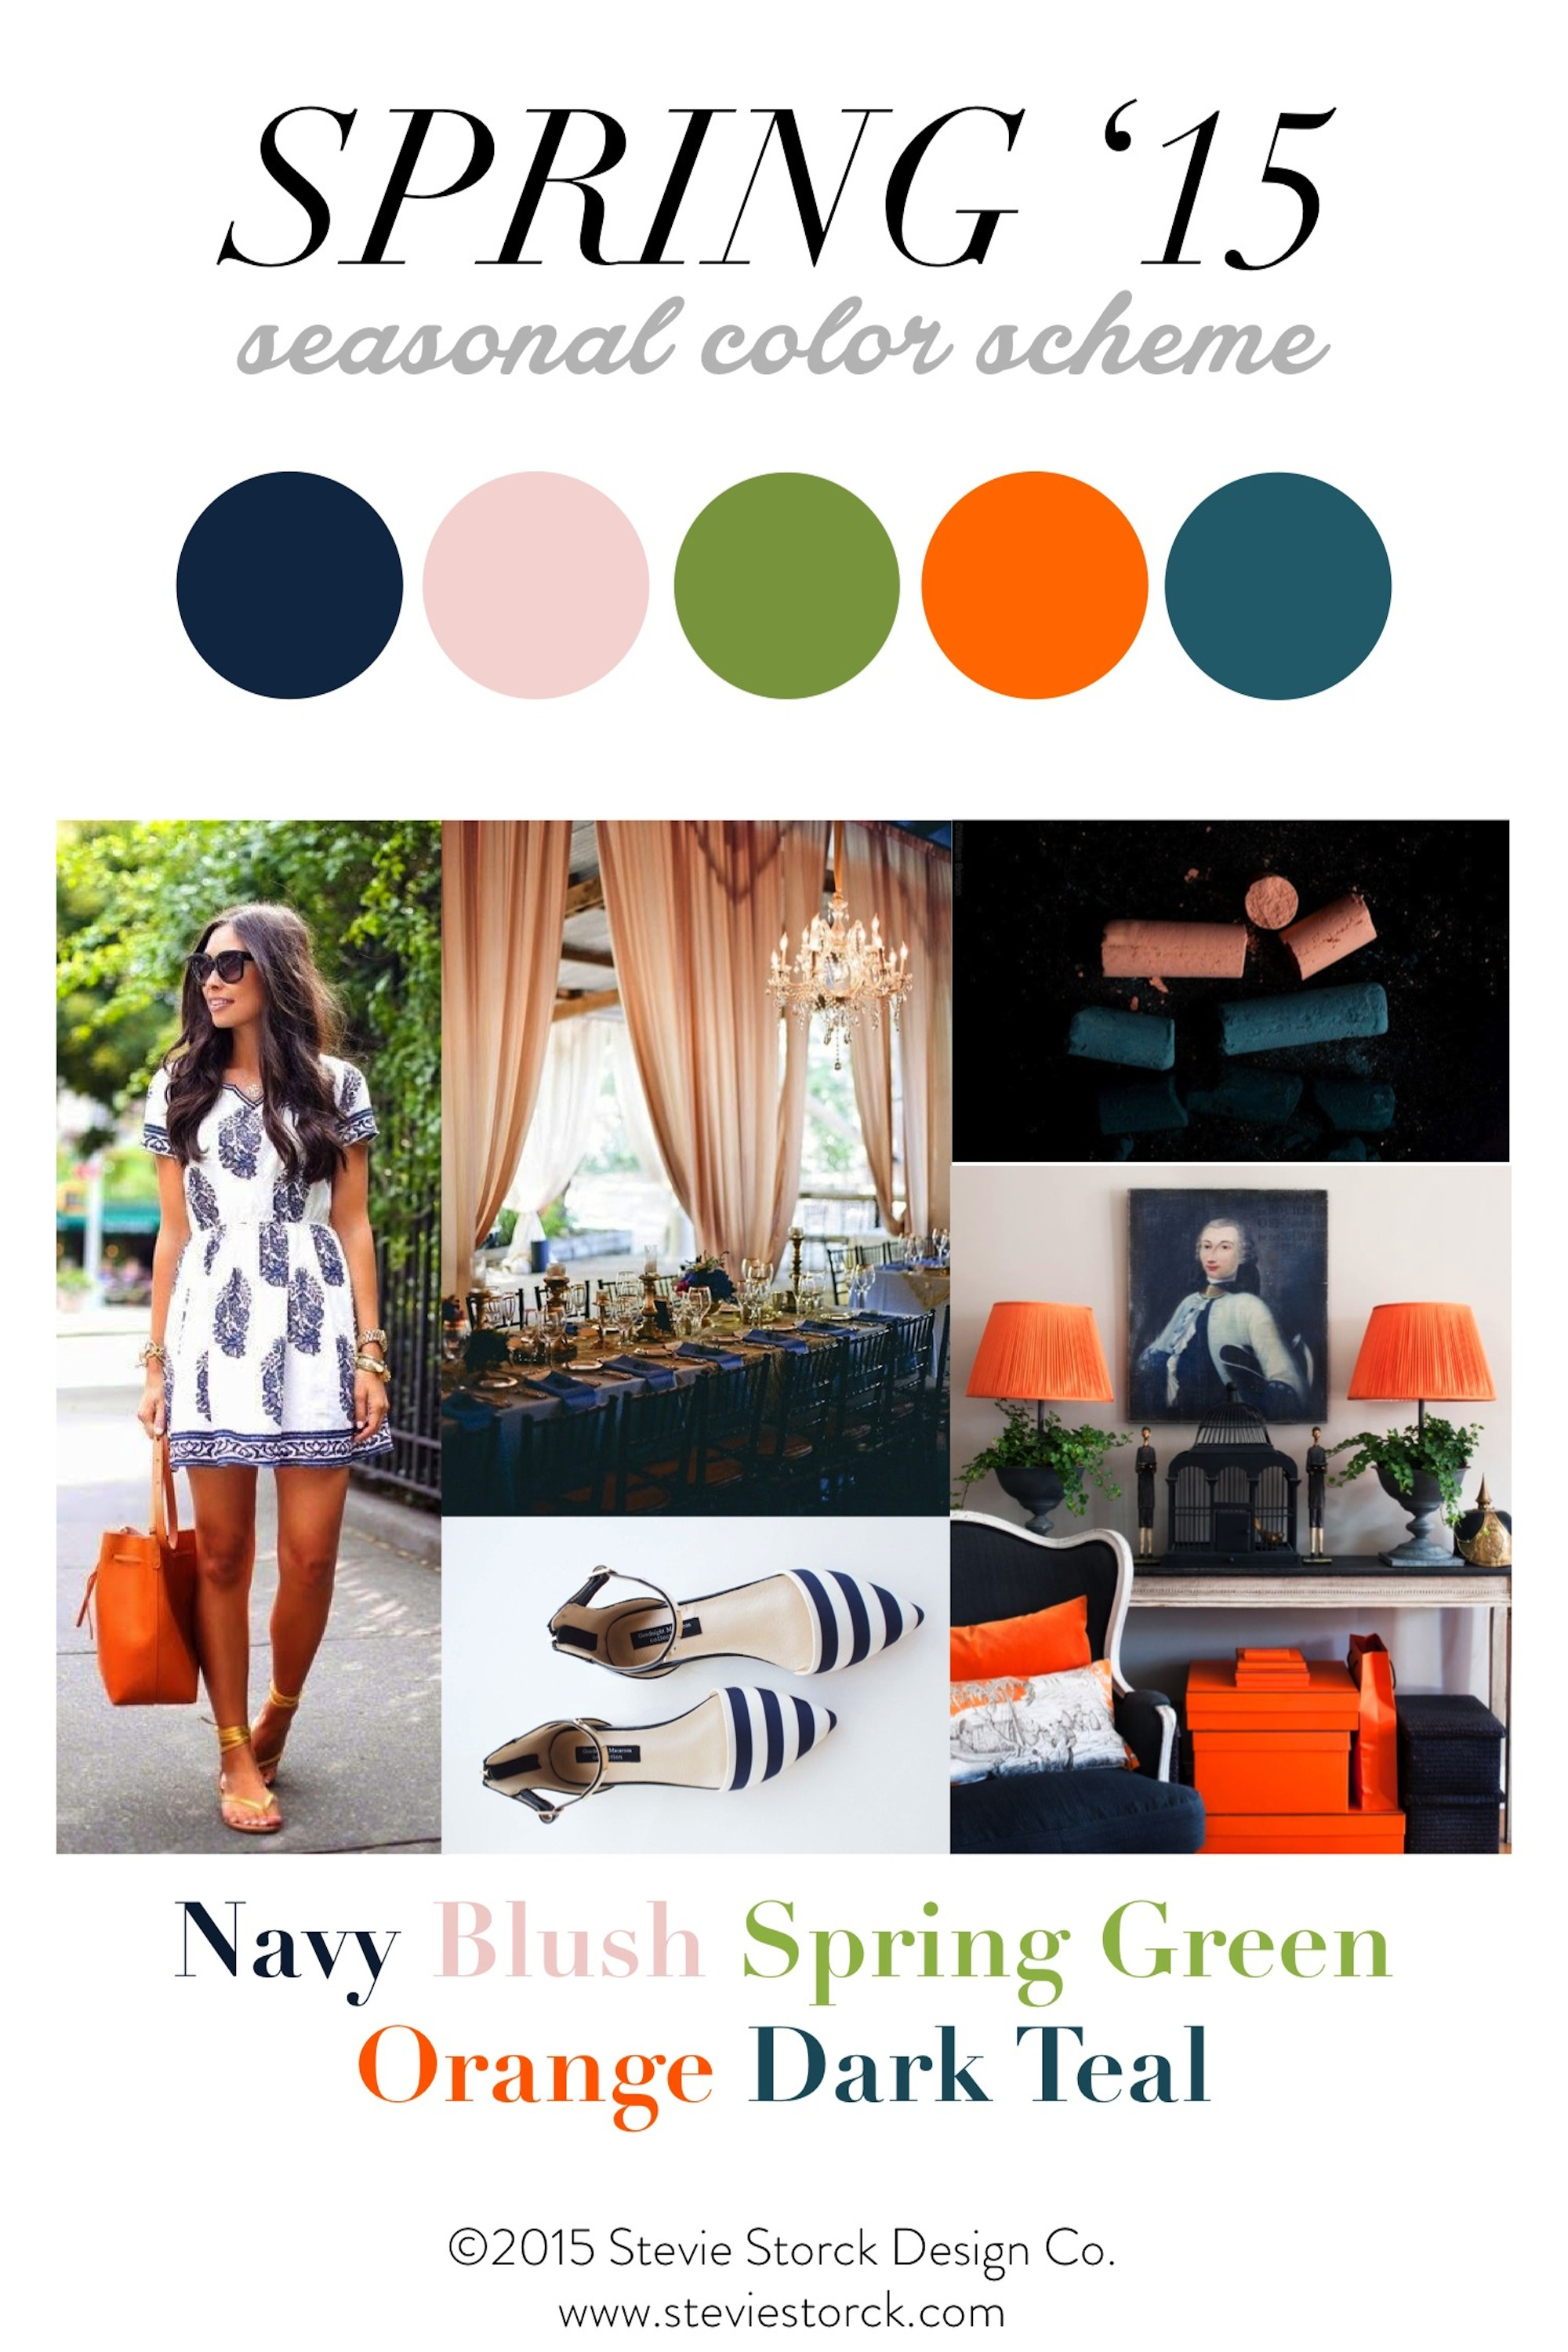 Spring Color Inspiration : Navy, Blush, Spring Green, Orange and Dark Teal - Stevie Storck Design Co.